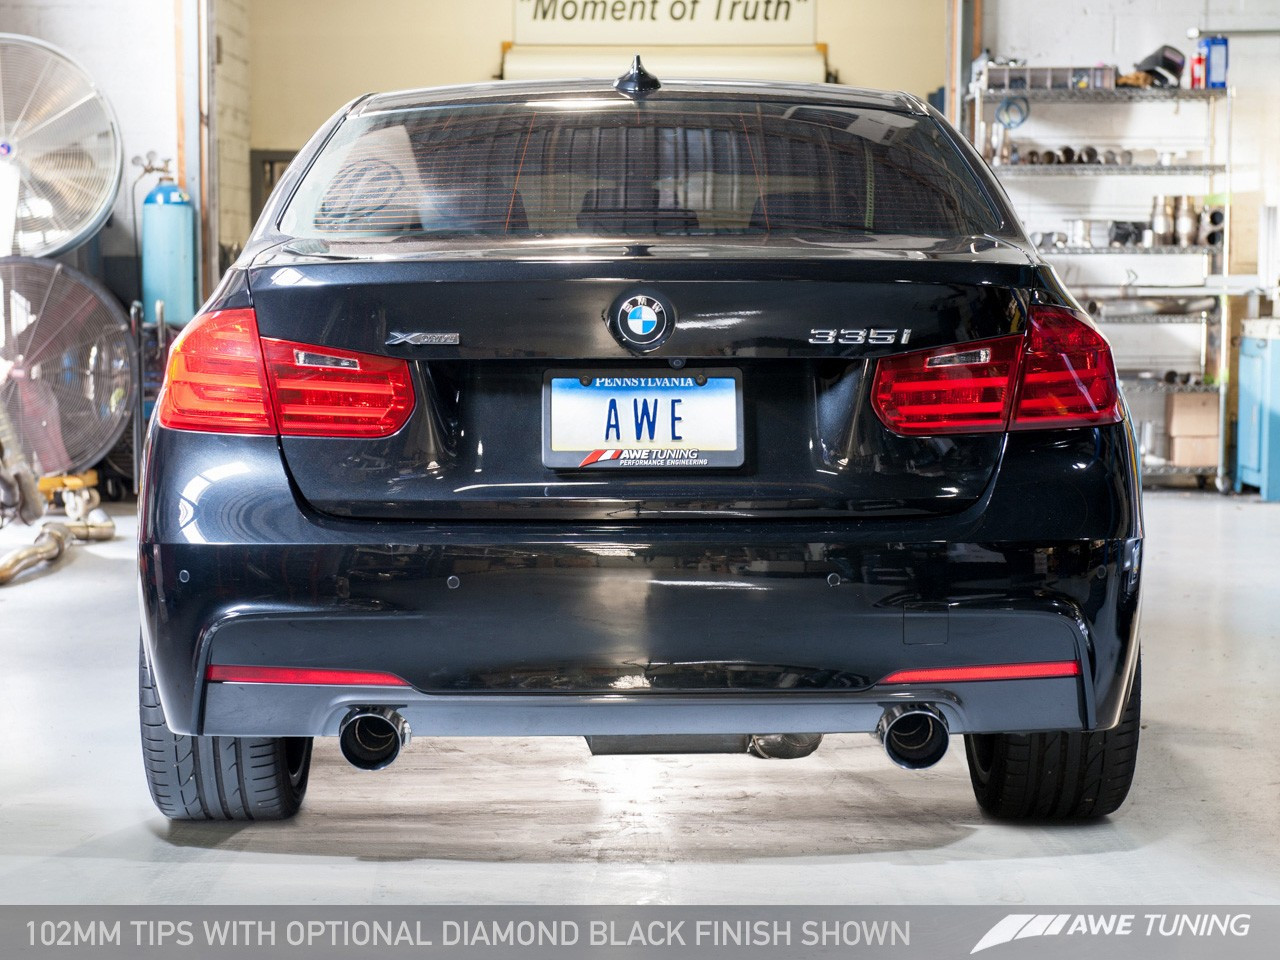 AWE Tuning BMW F3x 335i Touring Edition Exhaust - 102mm Diamond Black Tailpipes